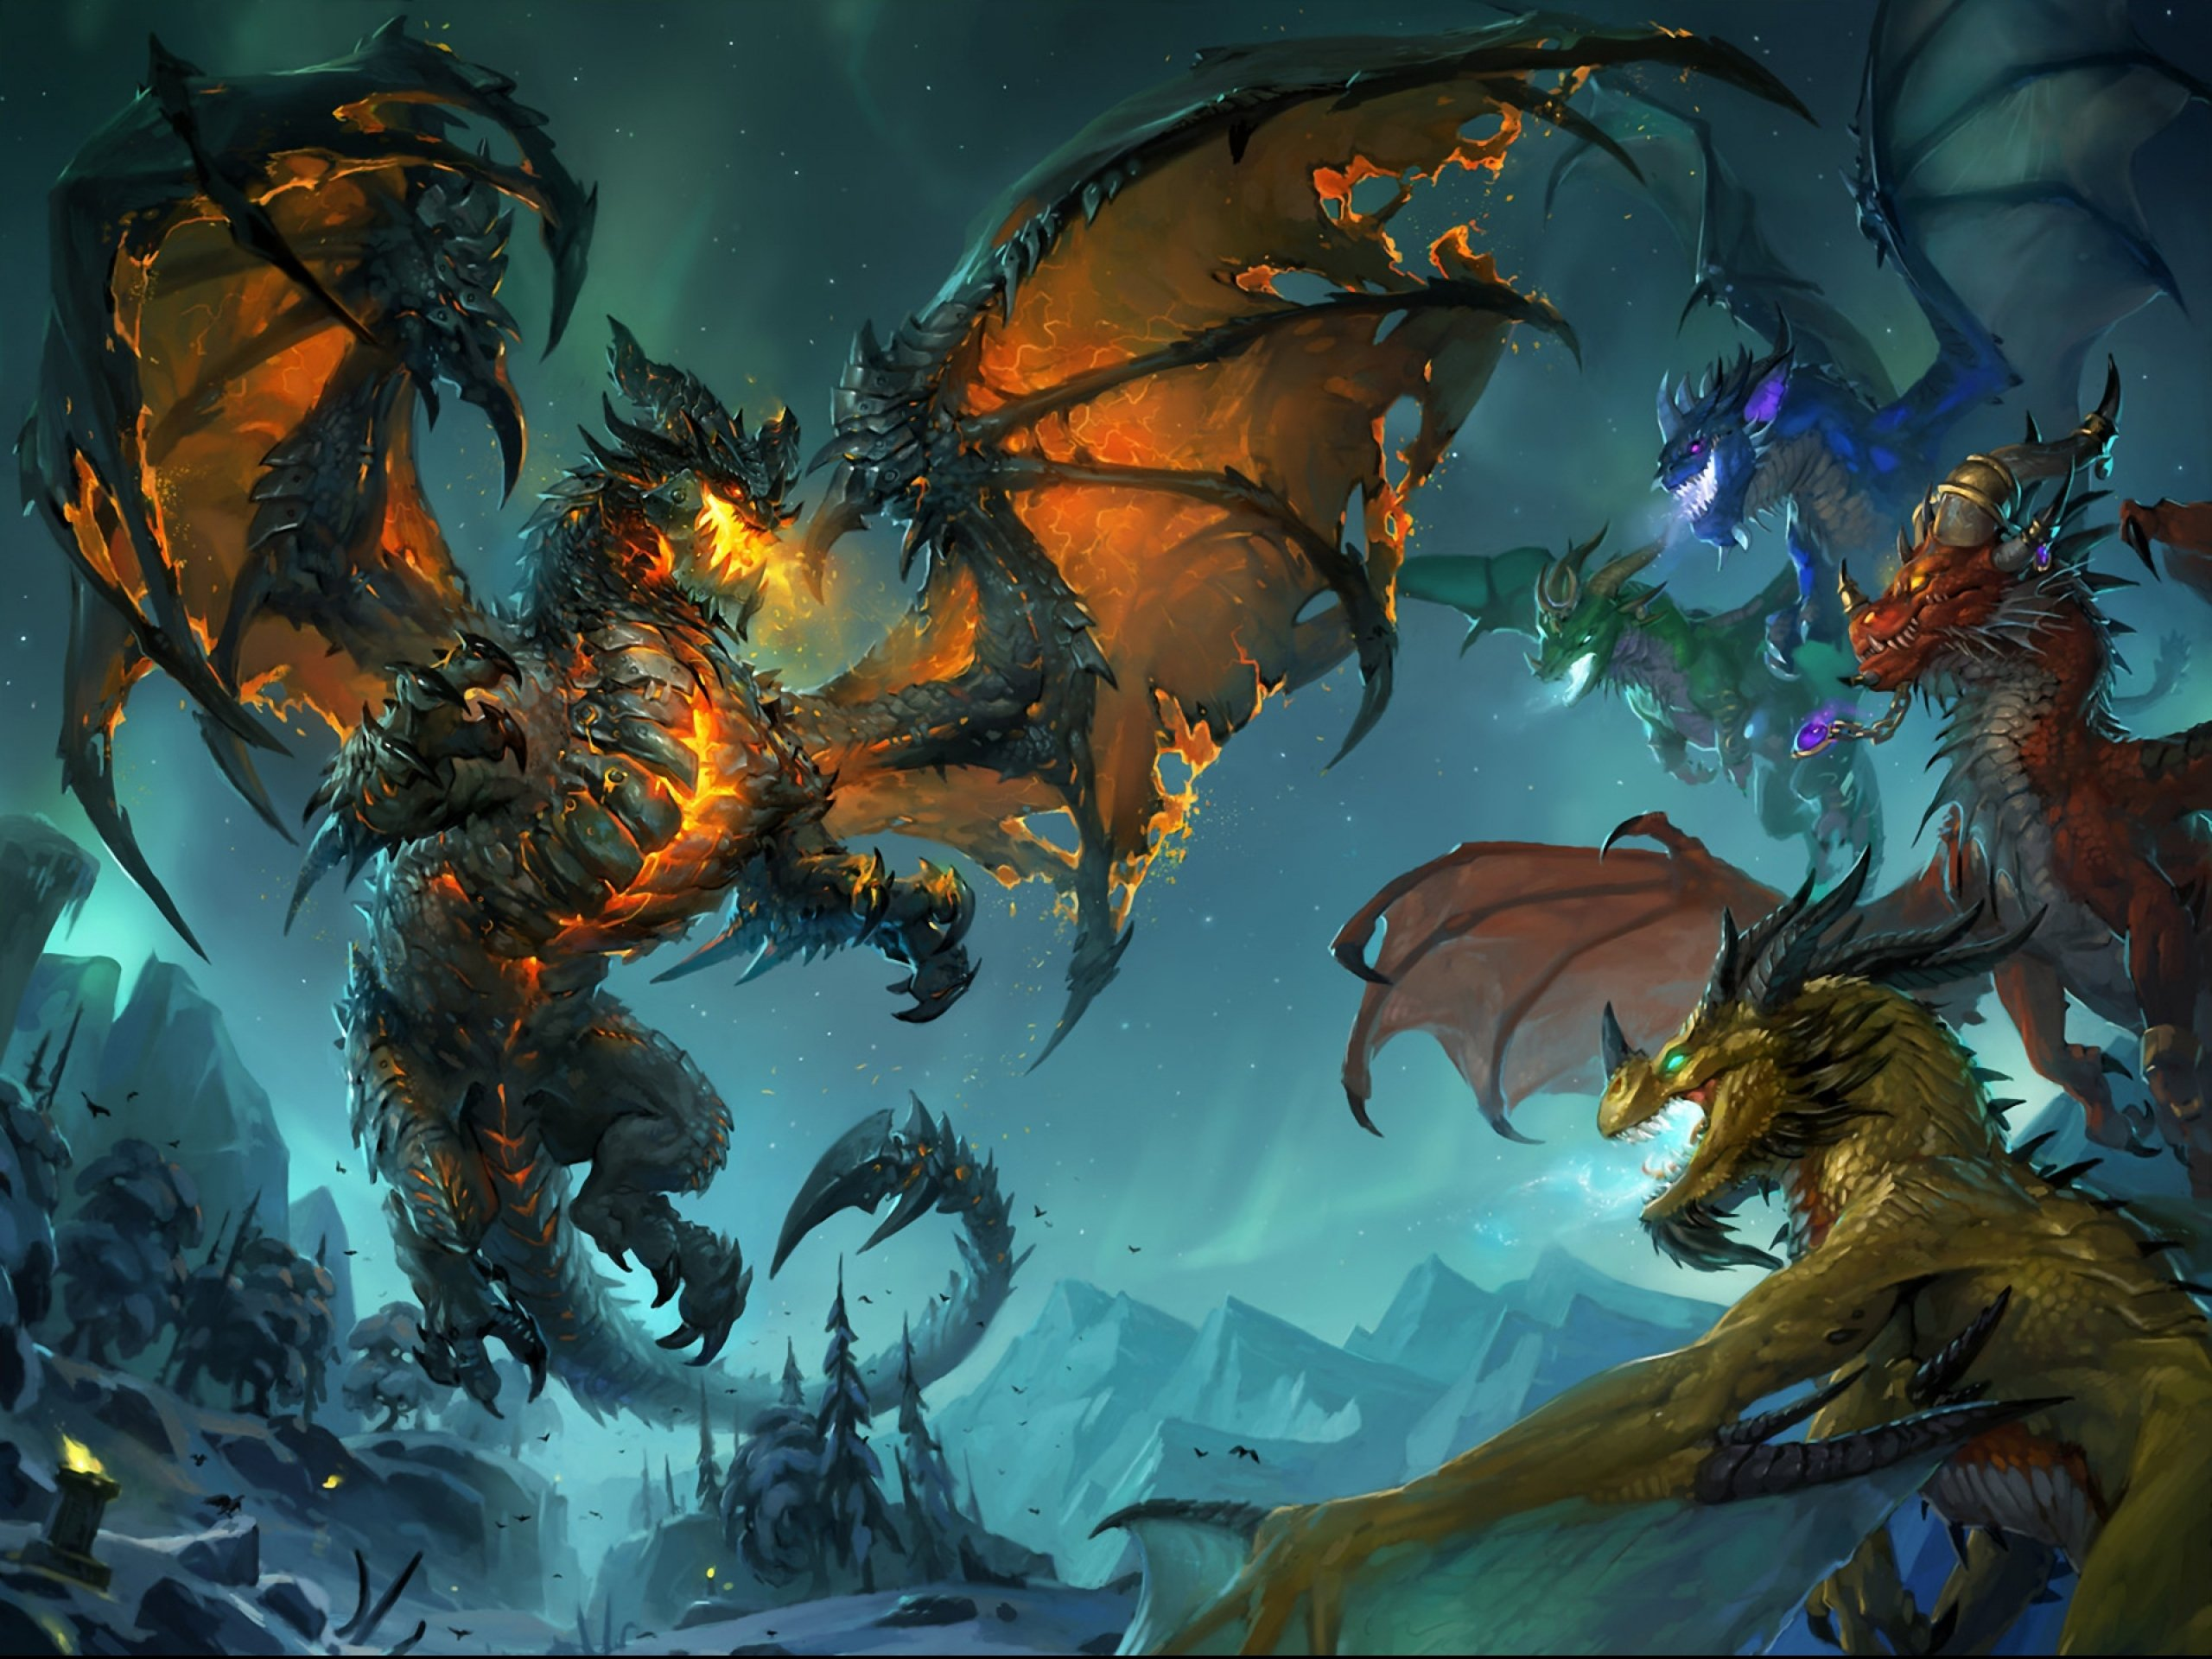 Fantasy World Art Dragon Dragon Fantasy Art Artwork Dragons Wallpaper 2560x1920